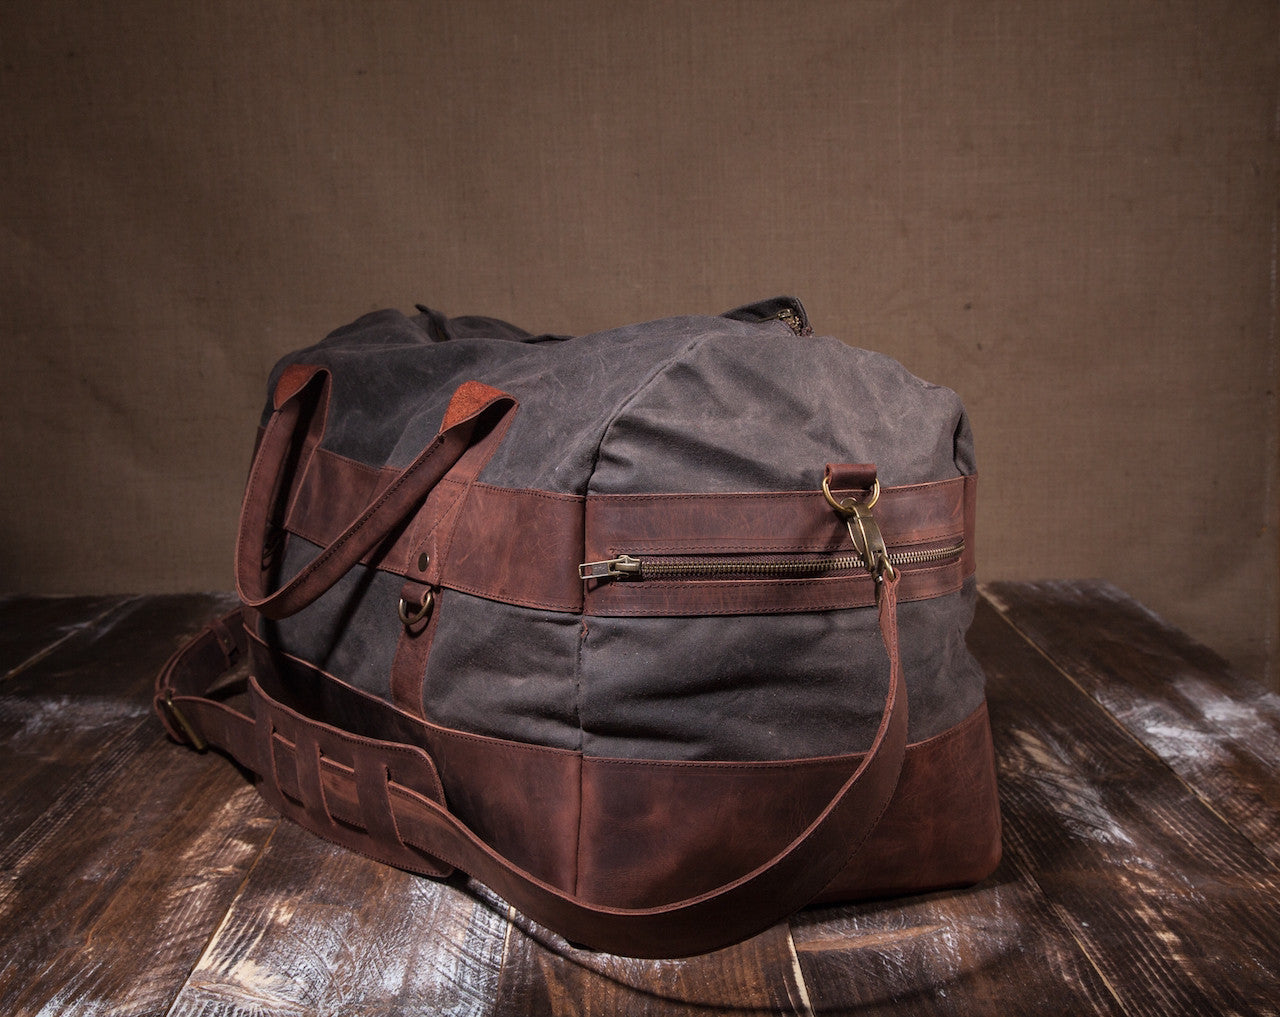 05d336cb5d86 Waxed Canvas Leather Weekender Duffel Bag for Men and Women - Gray Canvas  with Brown Leather